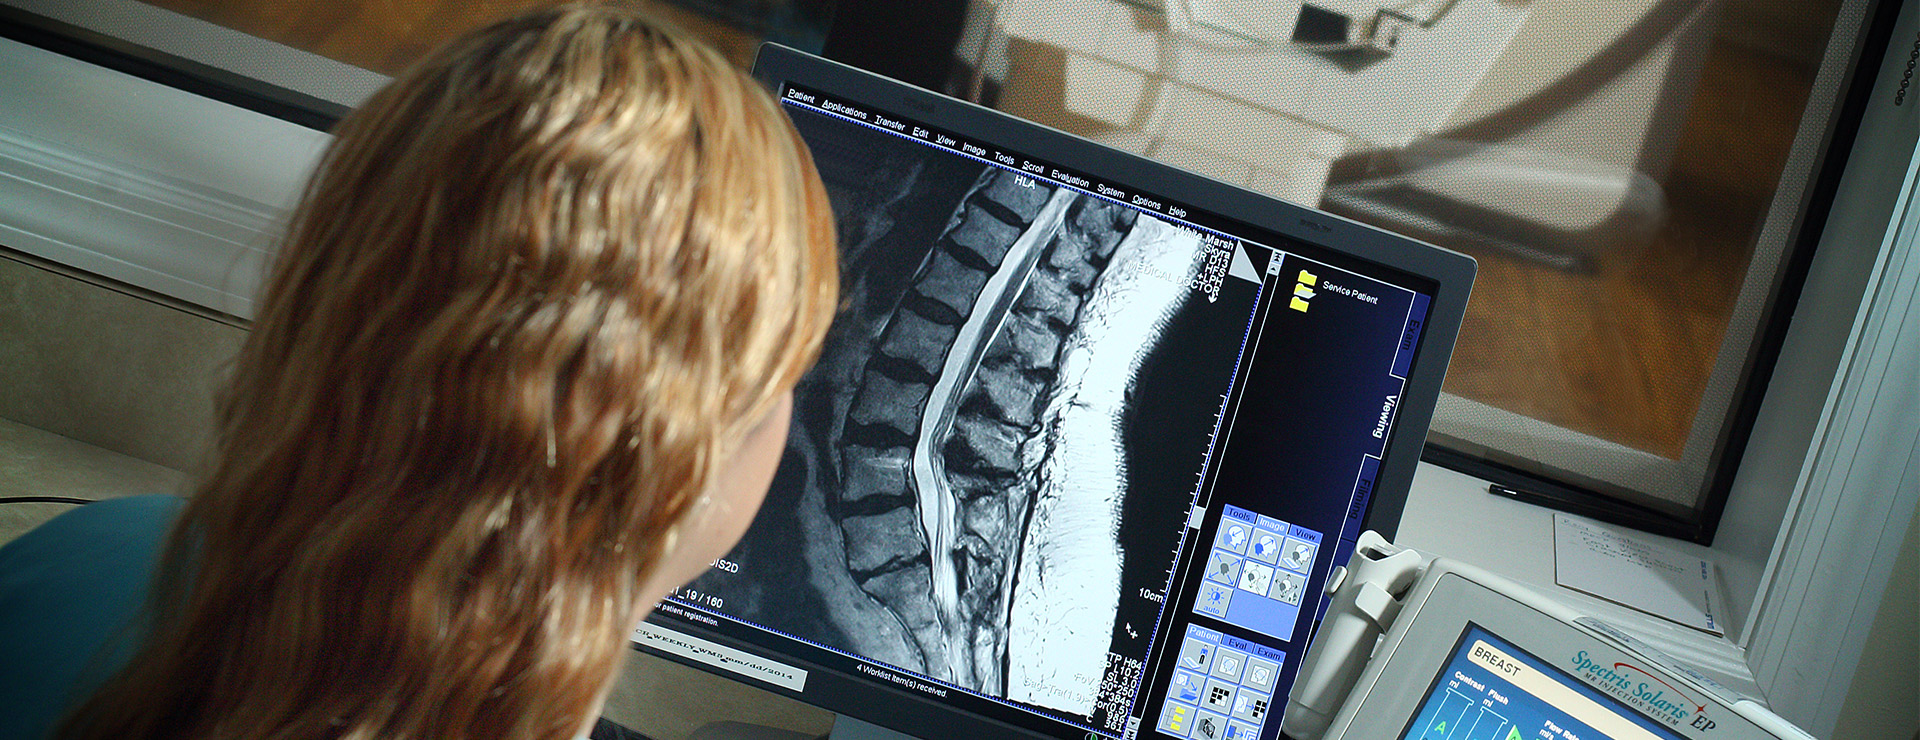 woman looking at mri screen